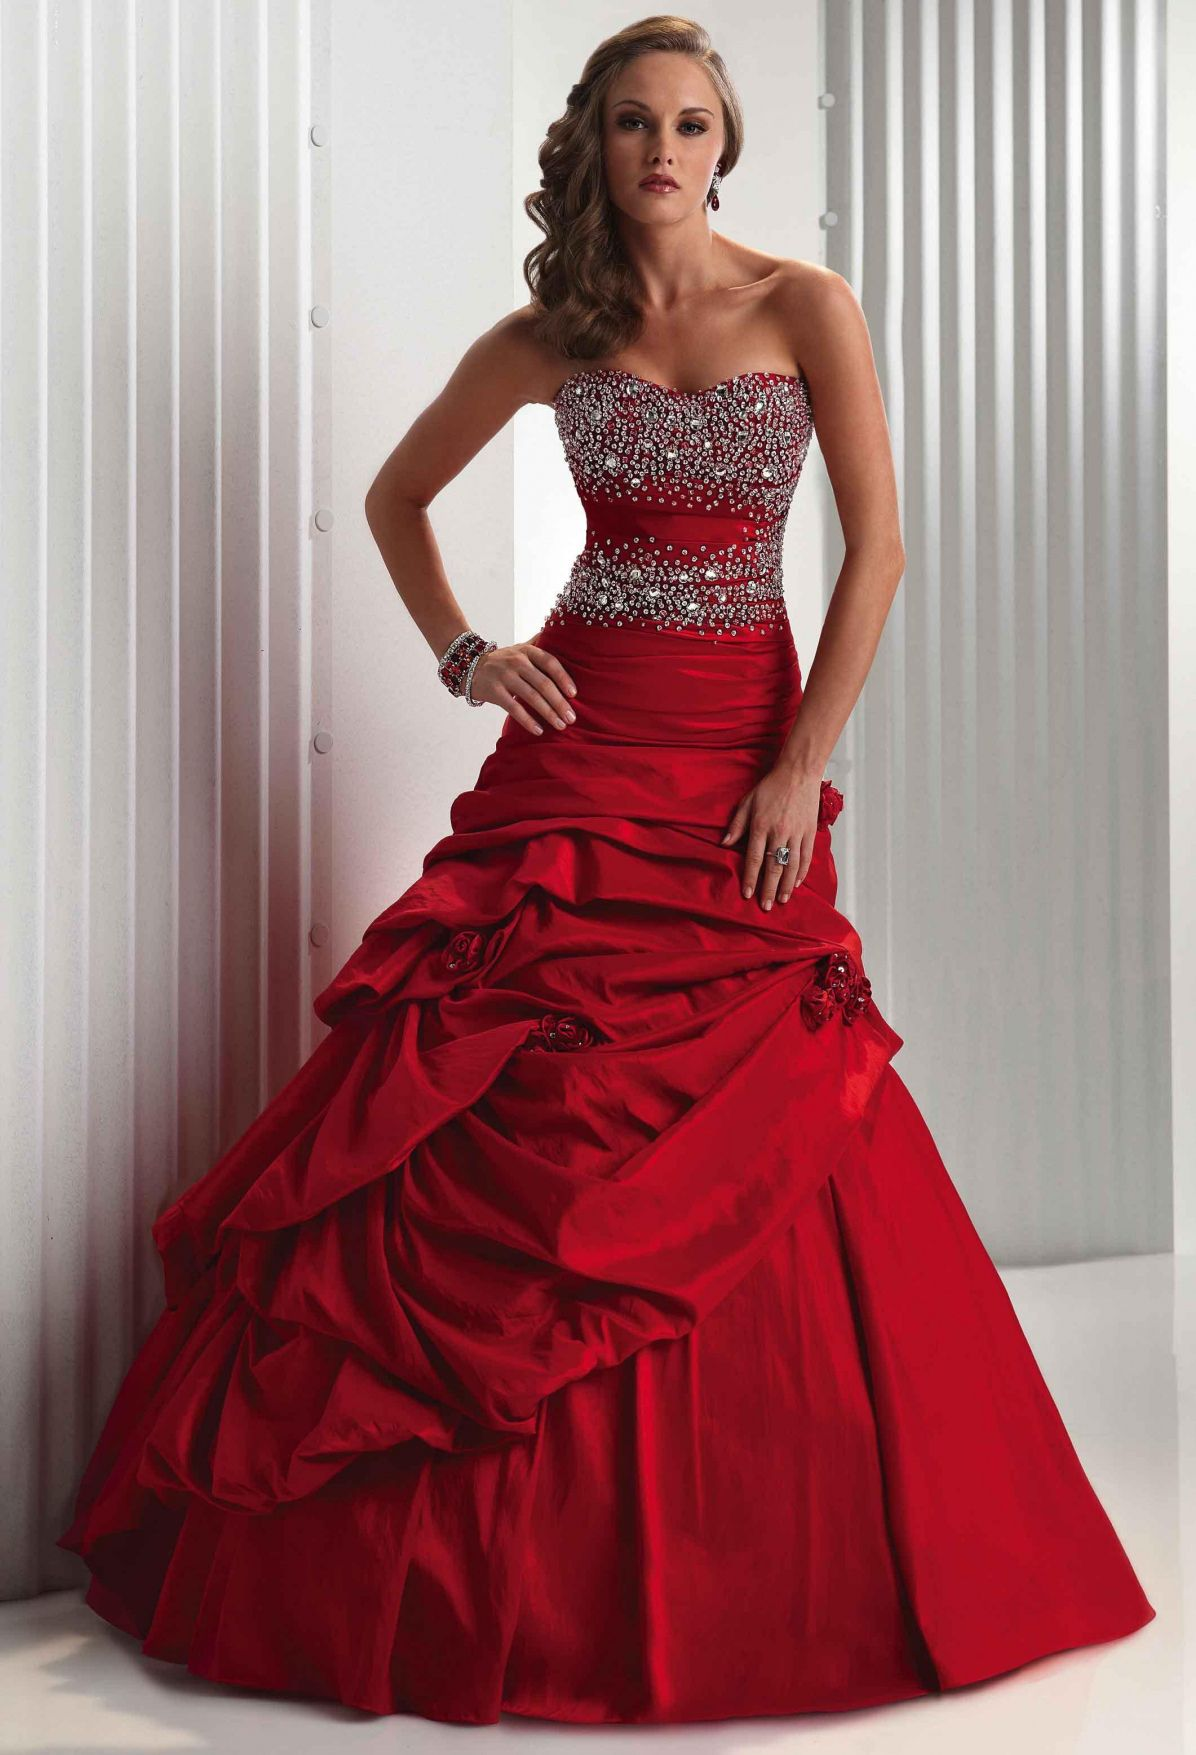 99 Red Wedding Dresses Meaning Country Dresses For Weddings Check More At Http Svesty Com Red Wedding Dresses Meaning